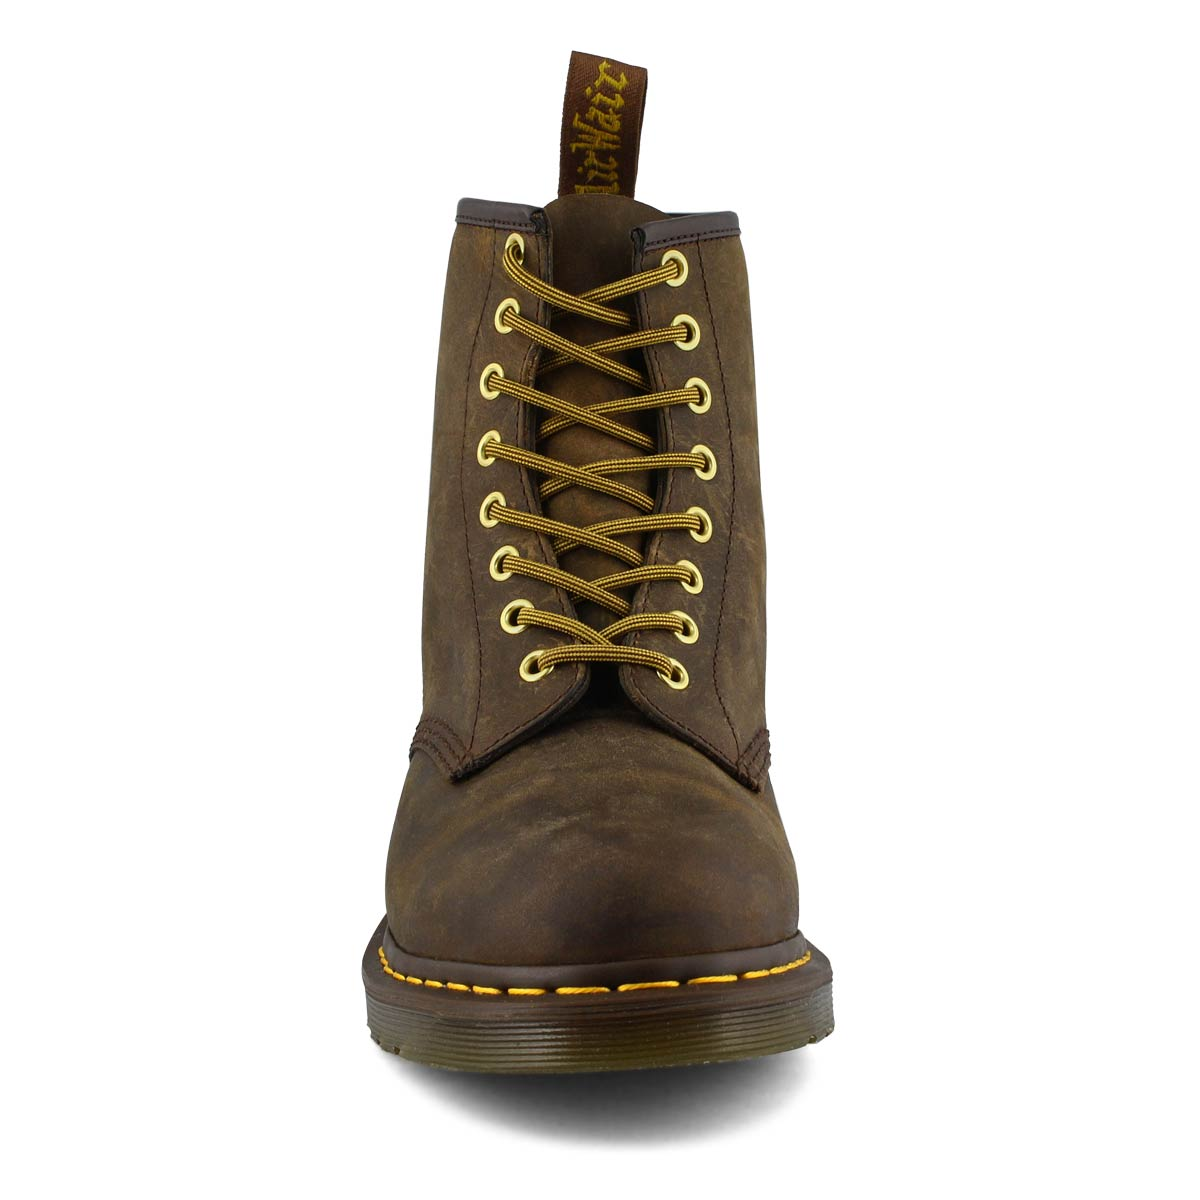 Mns 1460 8-Eye aztec crazyhorse lth boot